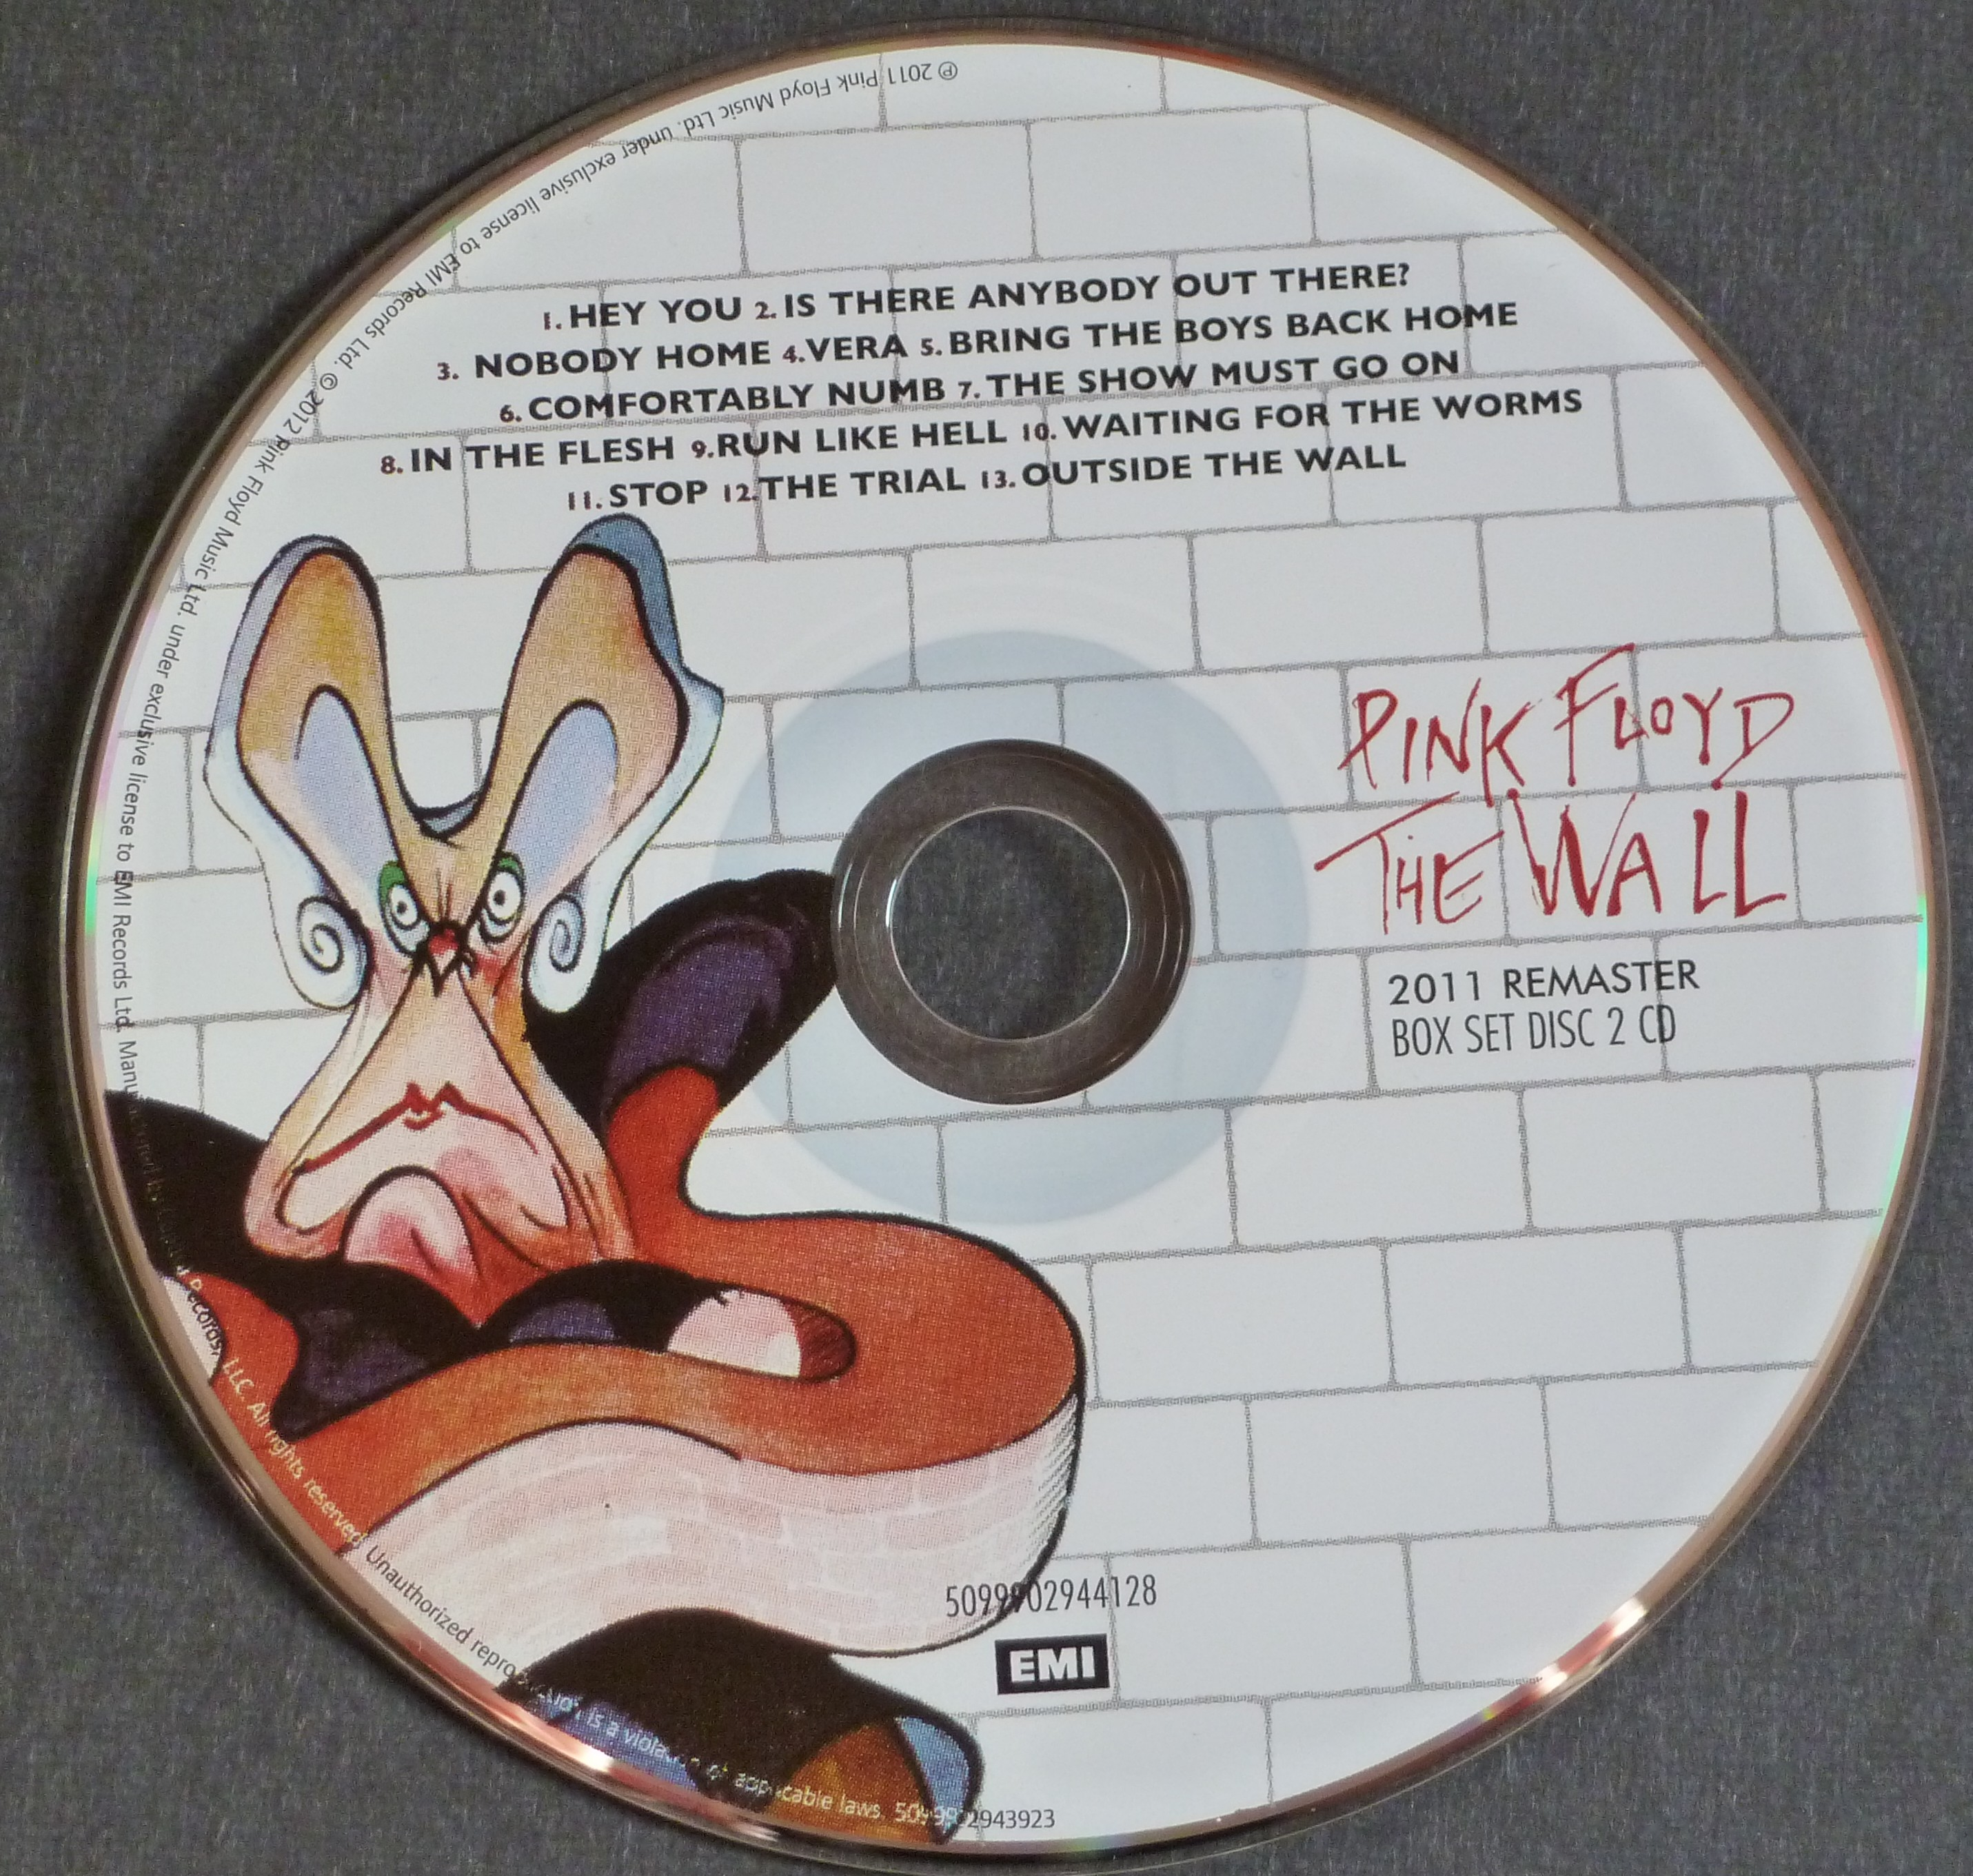 An in-depth look at Pink Floyd's 'the Wall' Immersion box ...